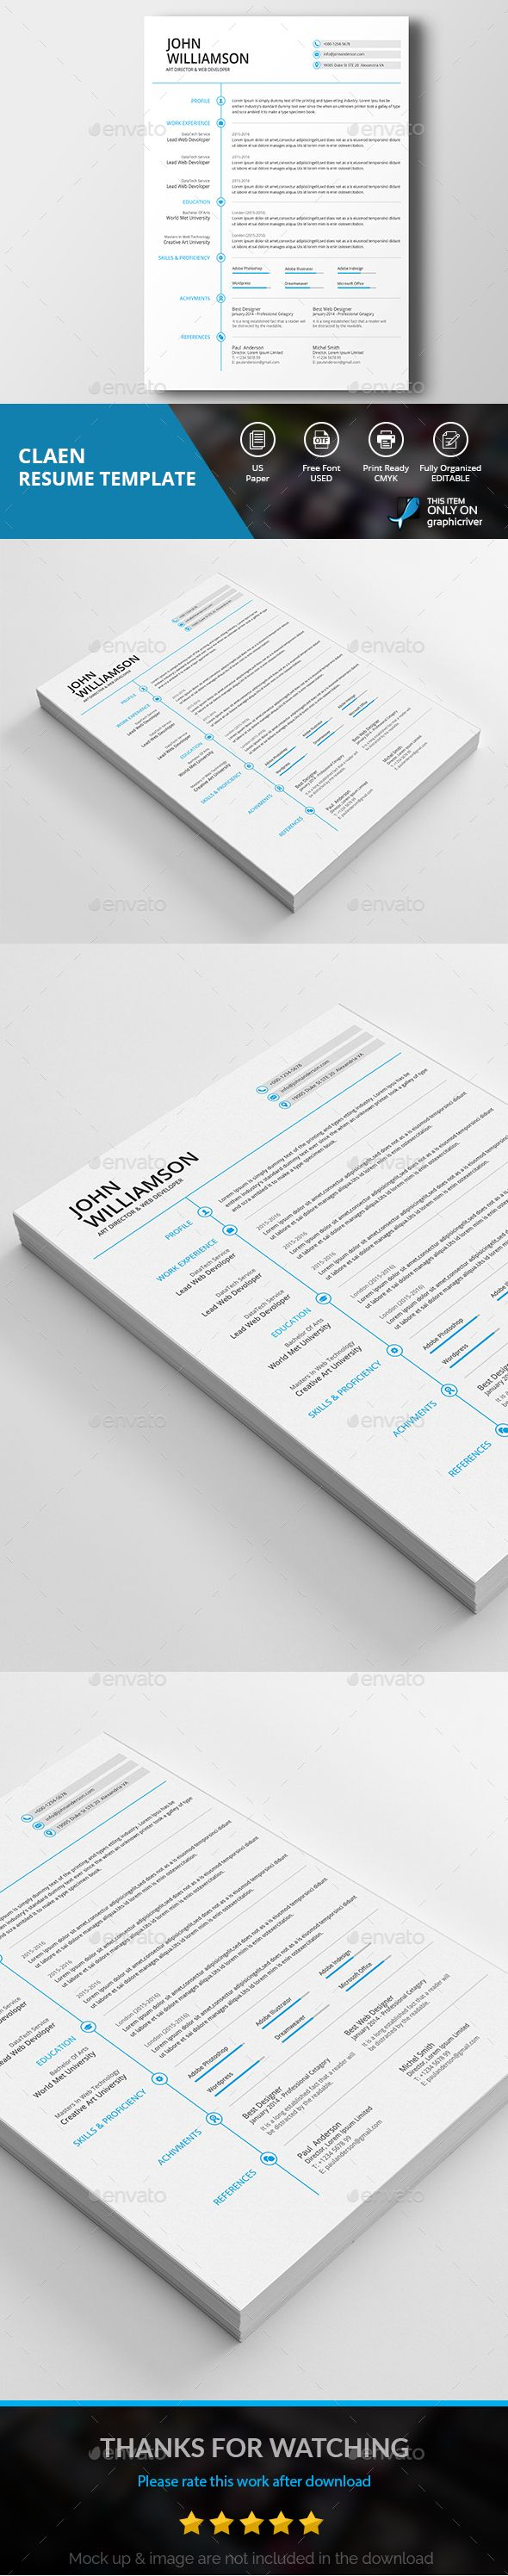 Cv Templates Design%0A Resume CV  Bailey by bilmaw creative on Creative Market   RESUME    Pinterest   Resume cv